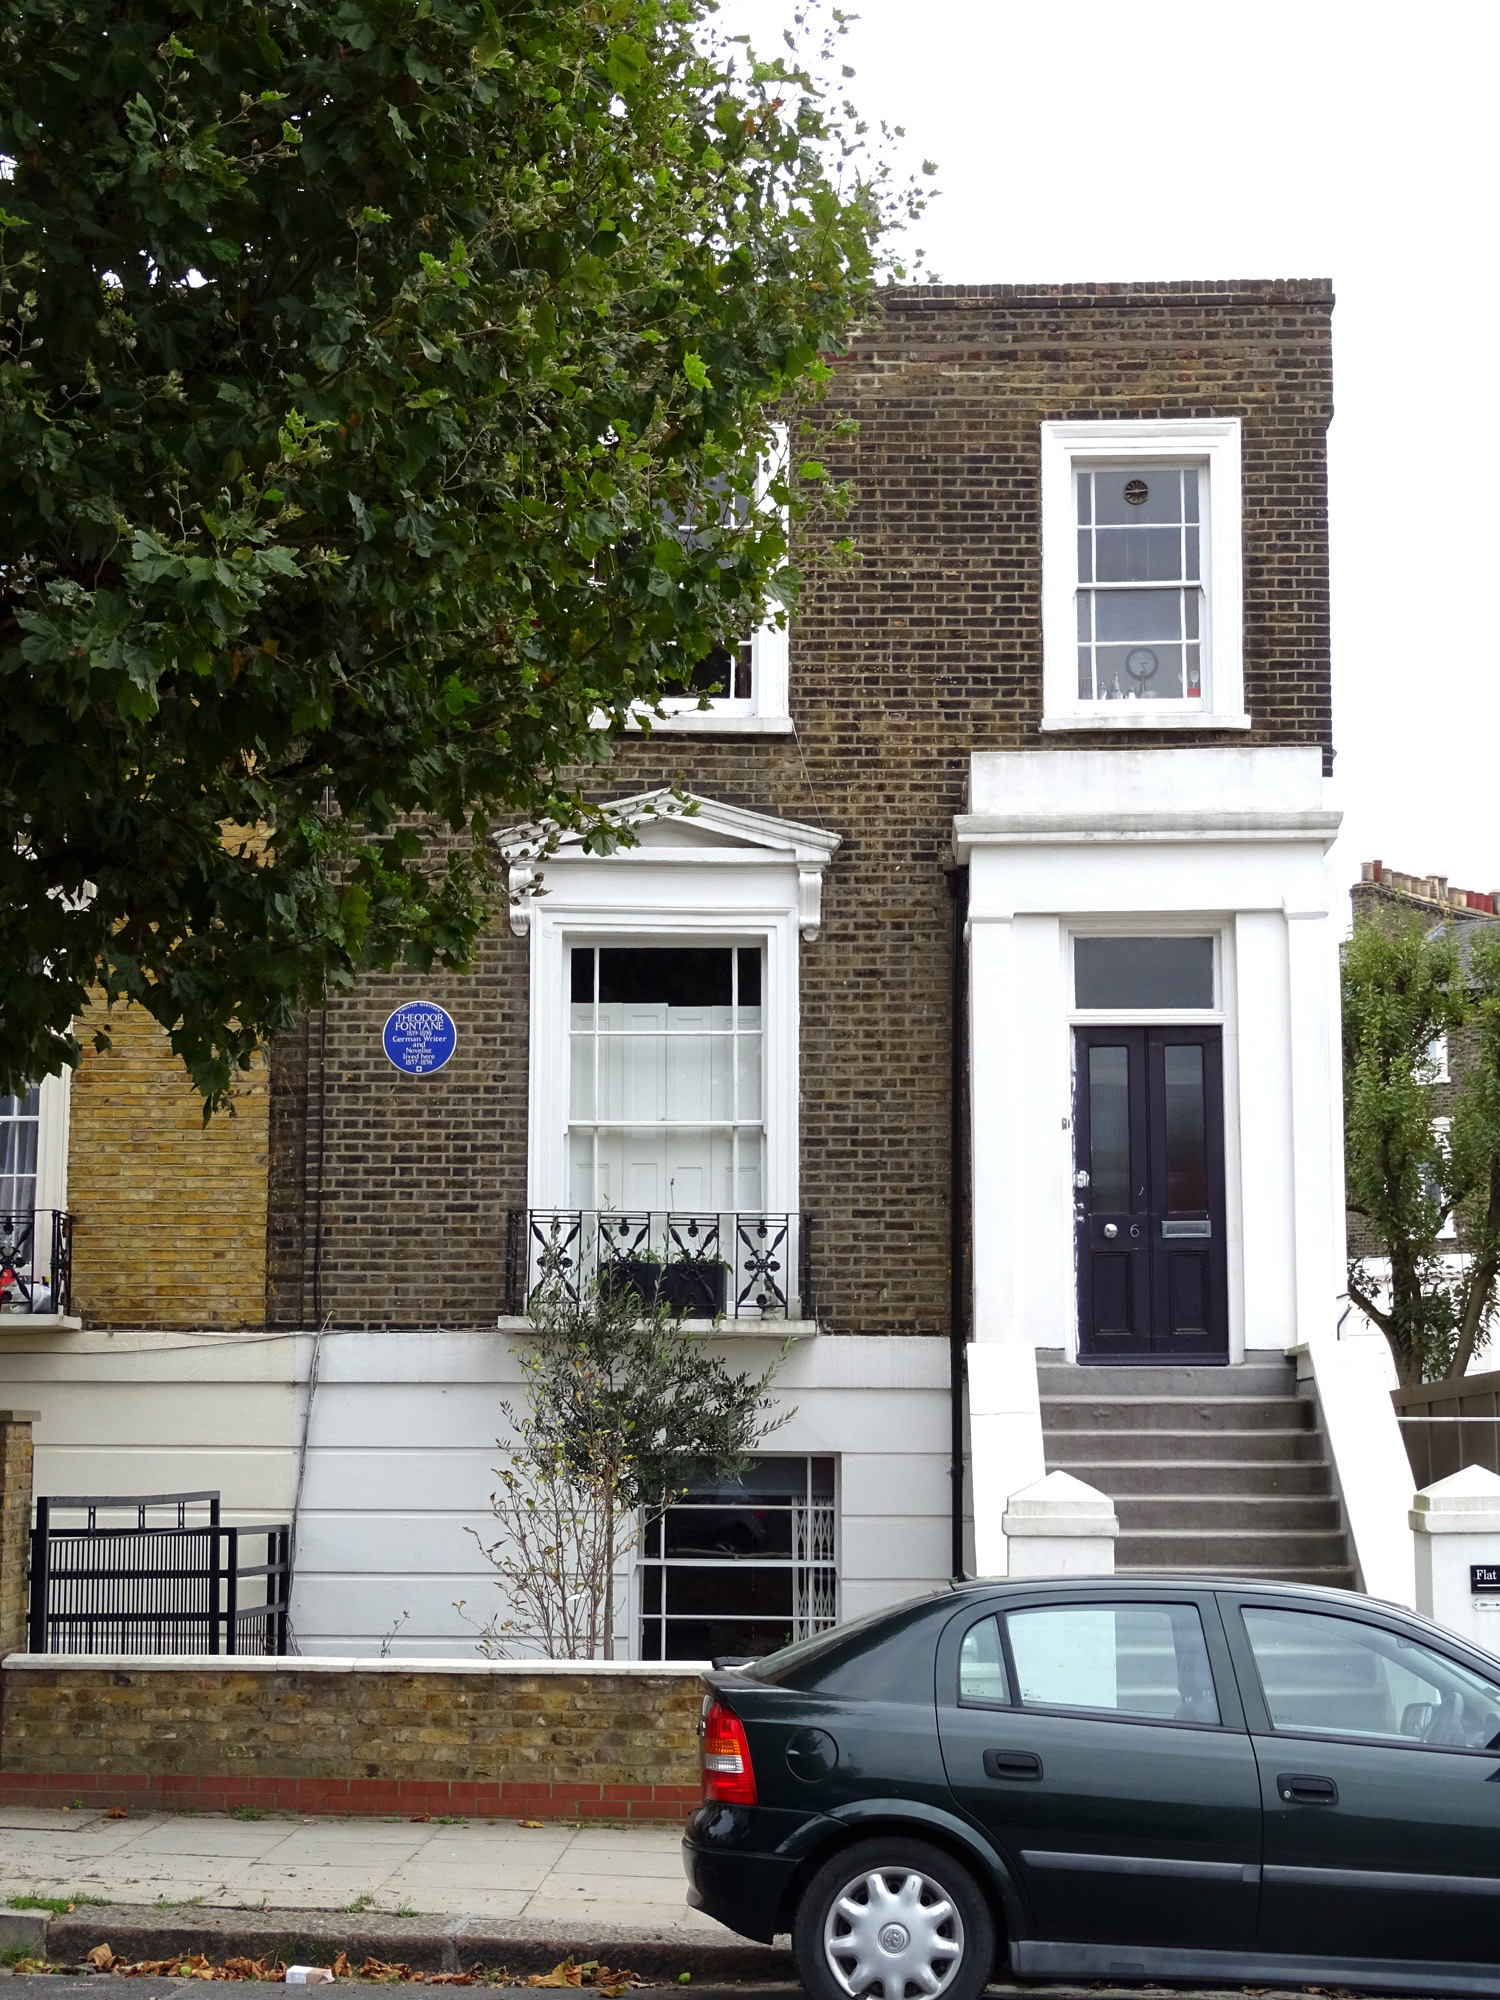 File THEODOR FONTANE 6 St Augustine S Road Camden London NW1 9RN